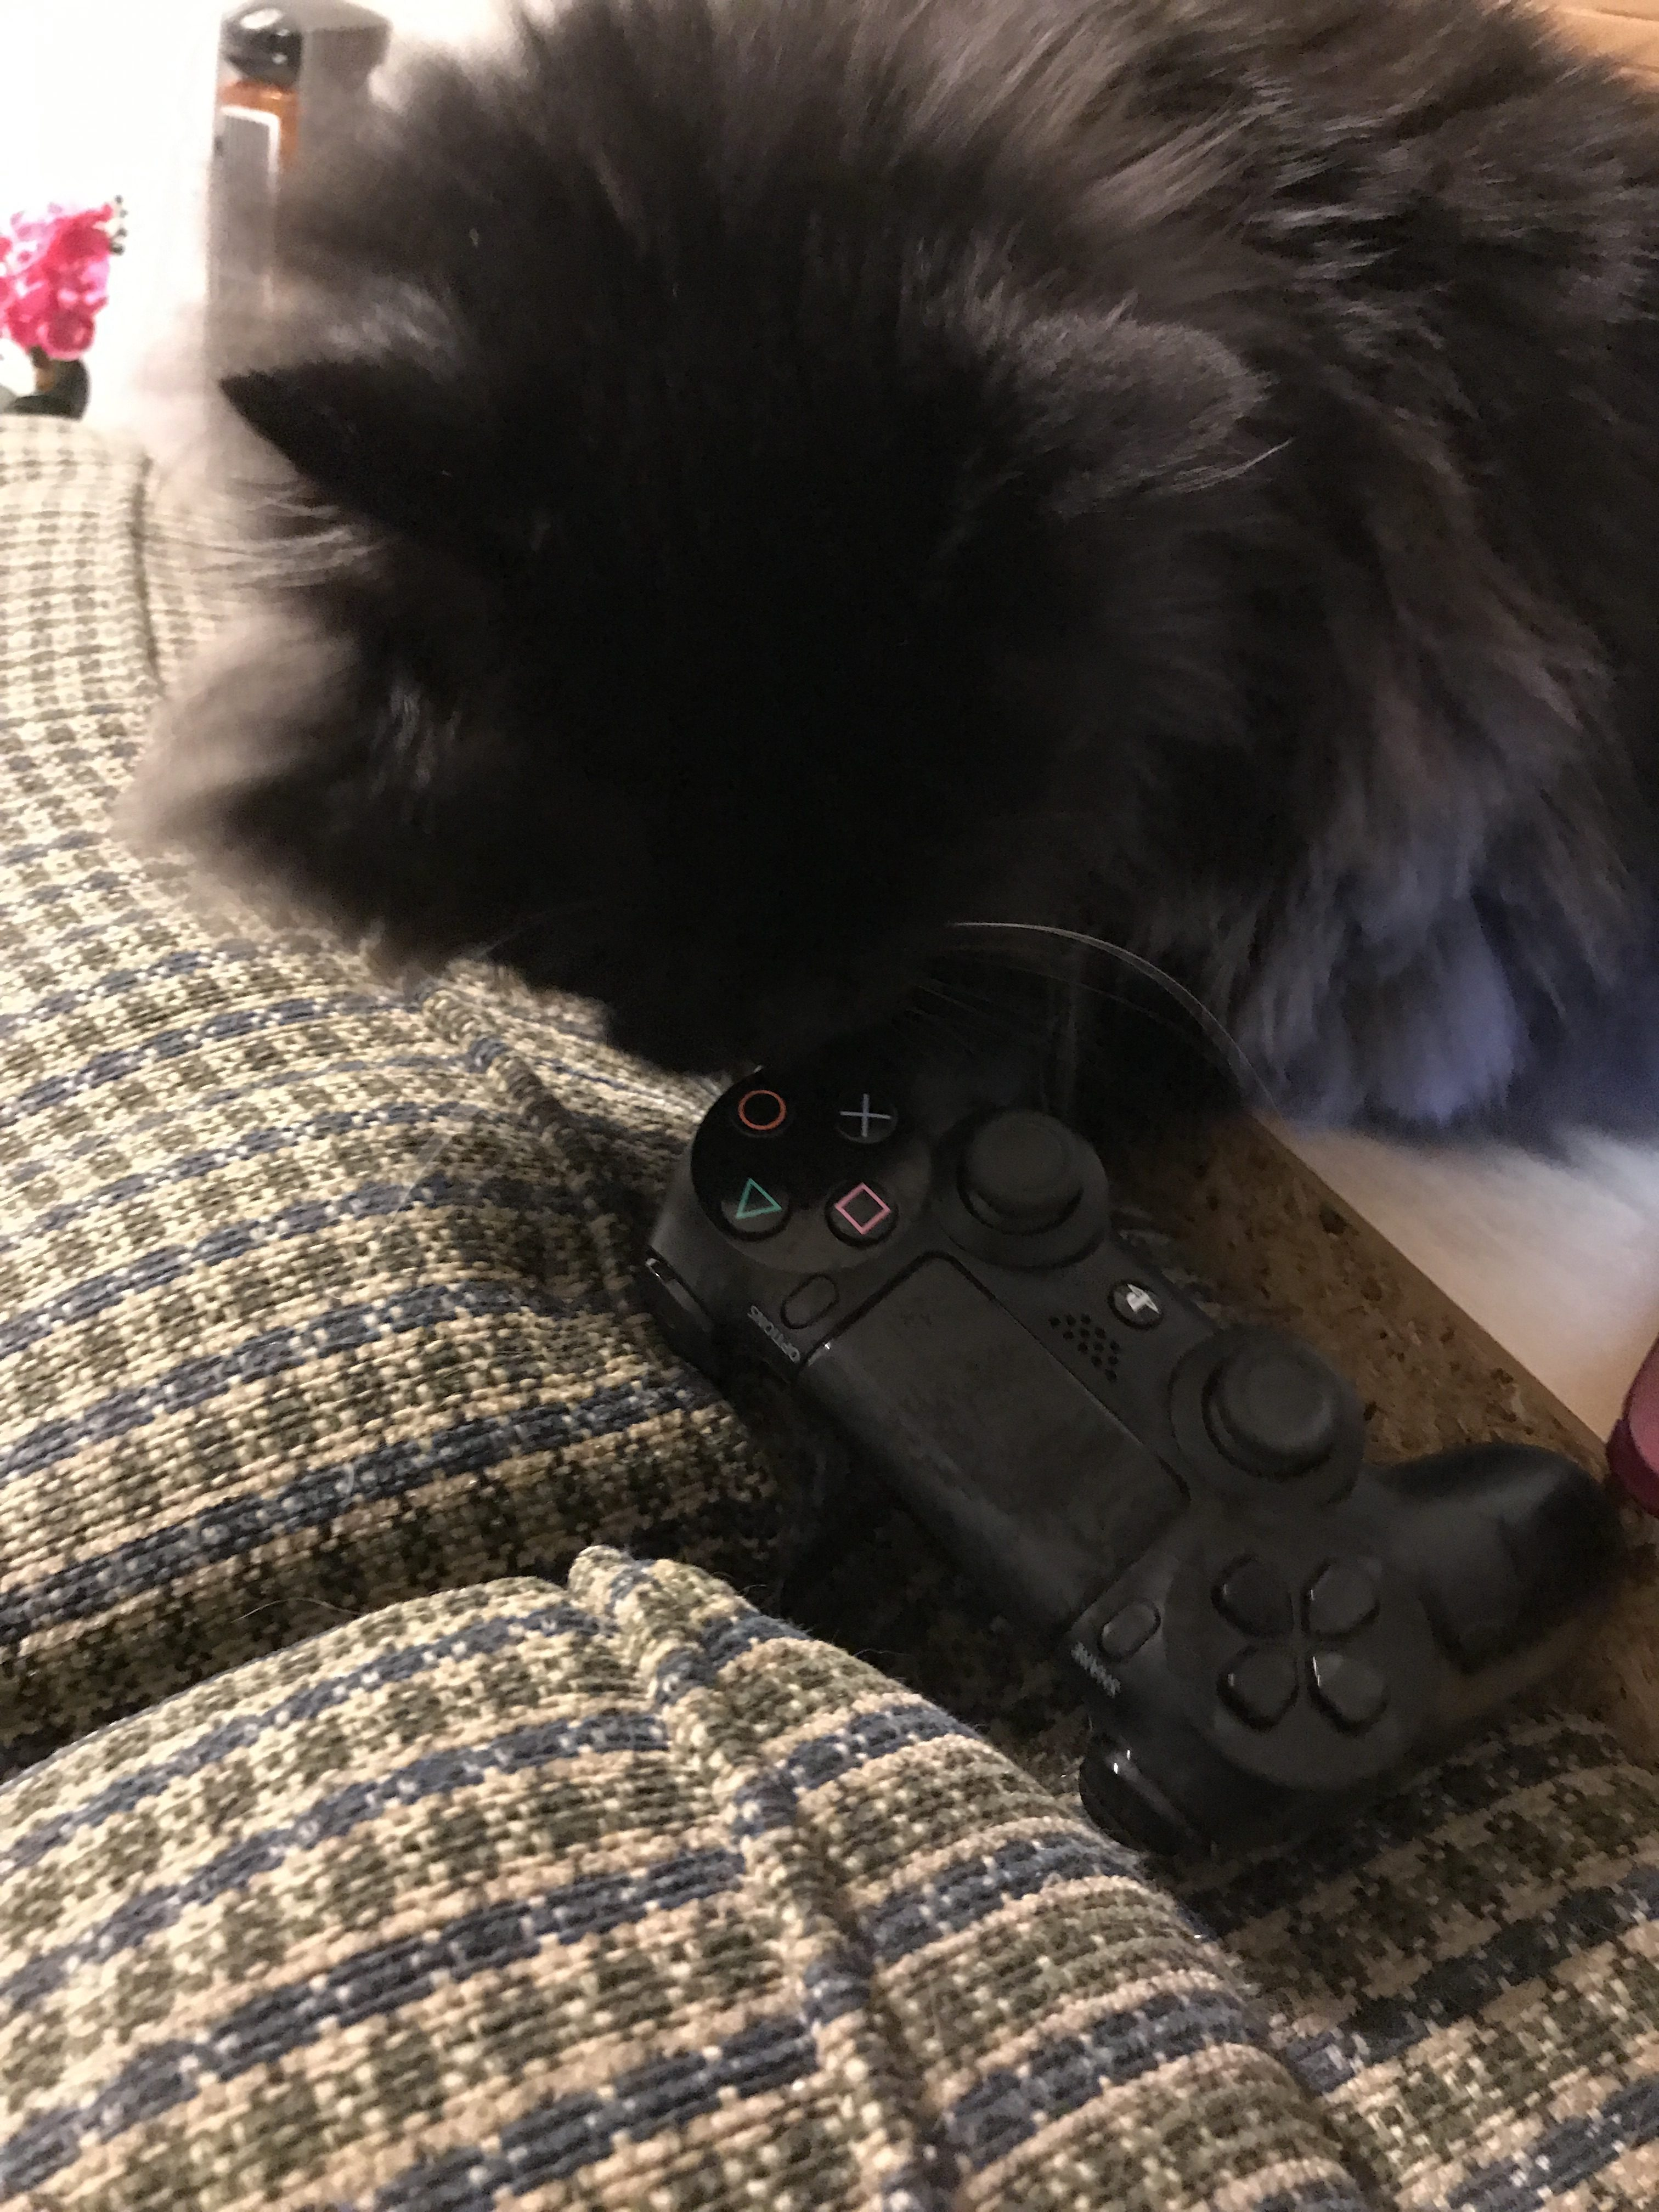 How do you keep your controllers clean? I use a cat.